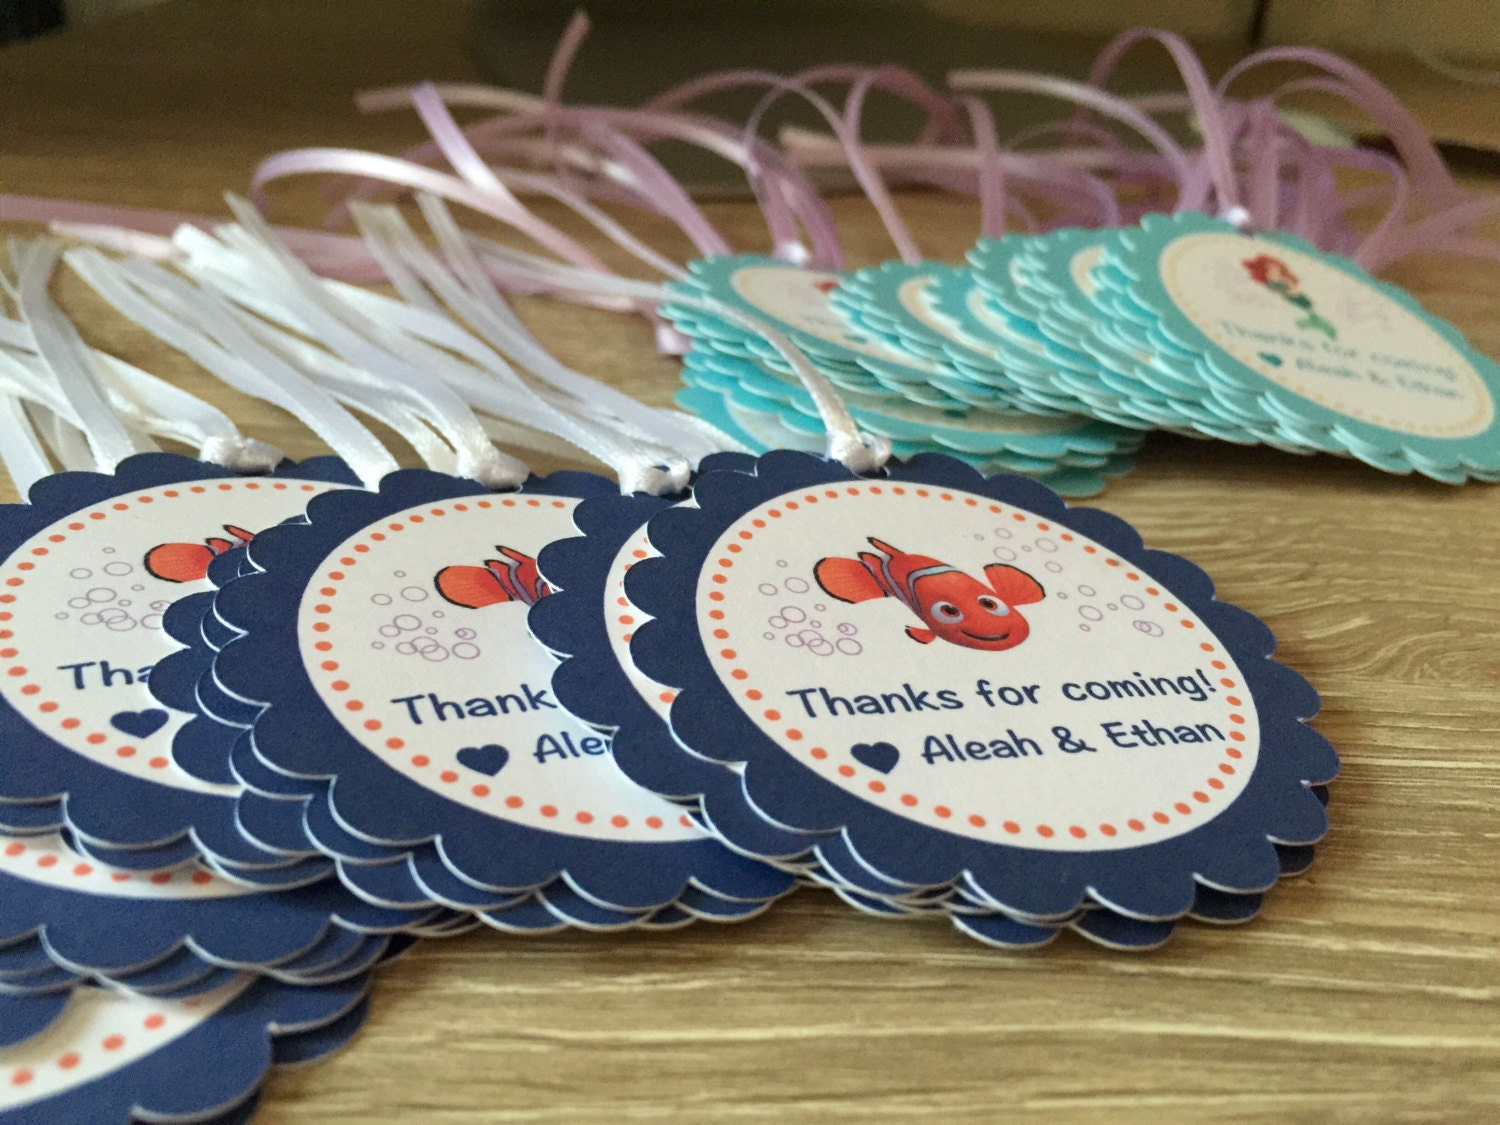 Beach Pail Party Favors Saying Thank You For Coming: Finding Dory Finding Nemo Party Favor Tags With Ribbon Dory